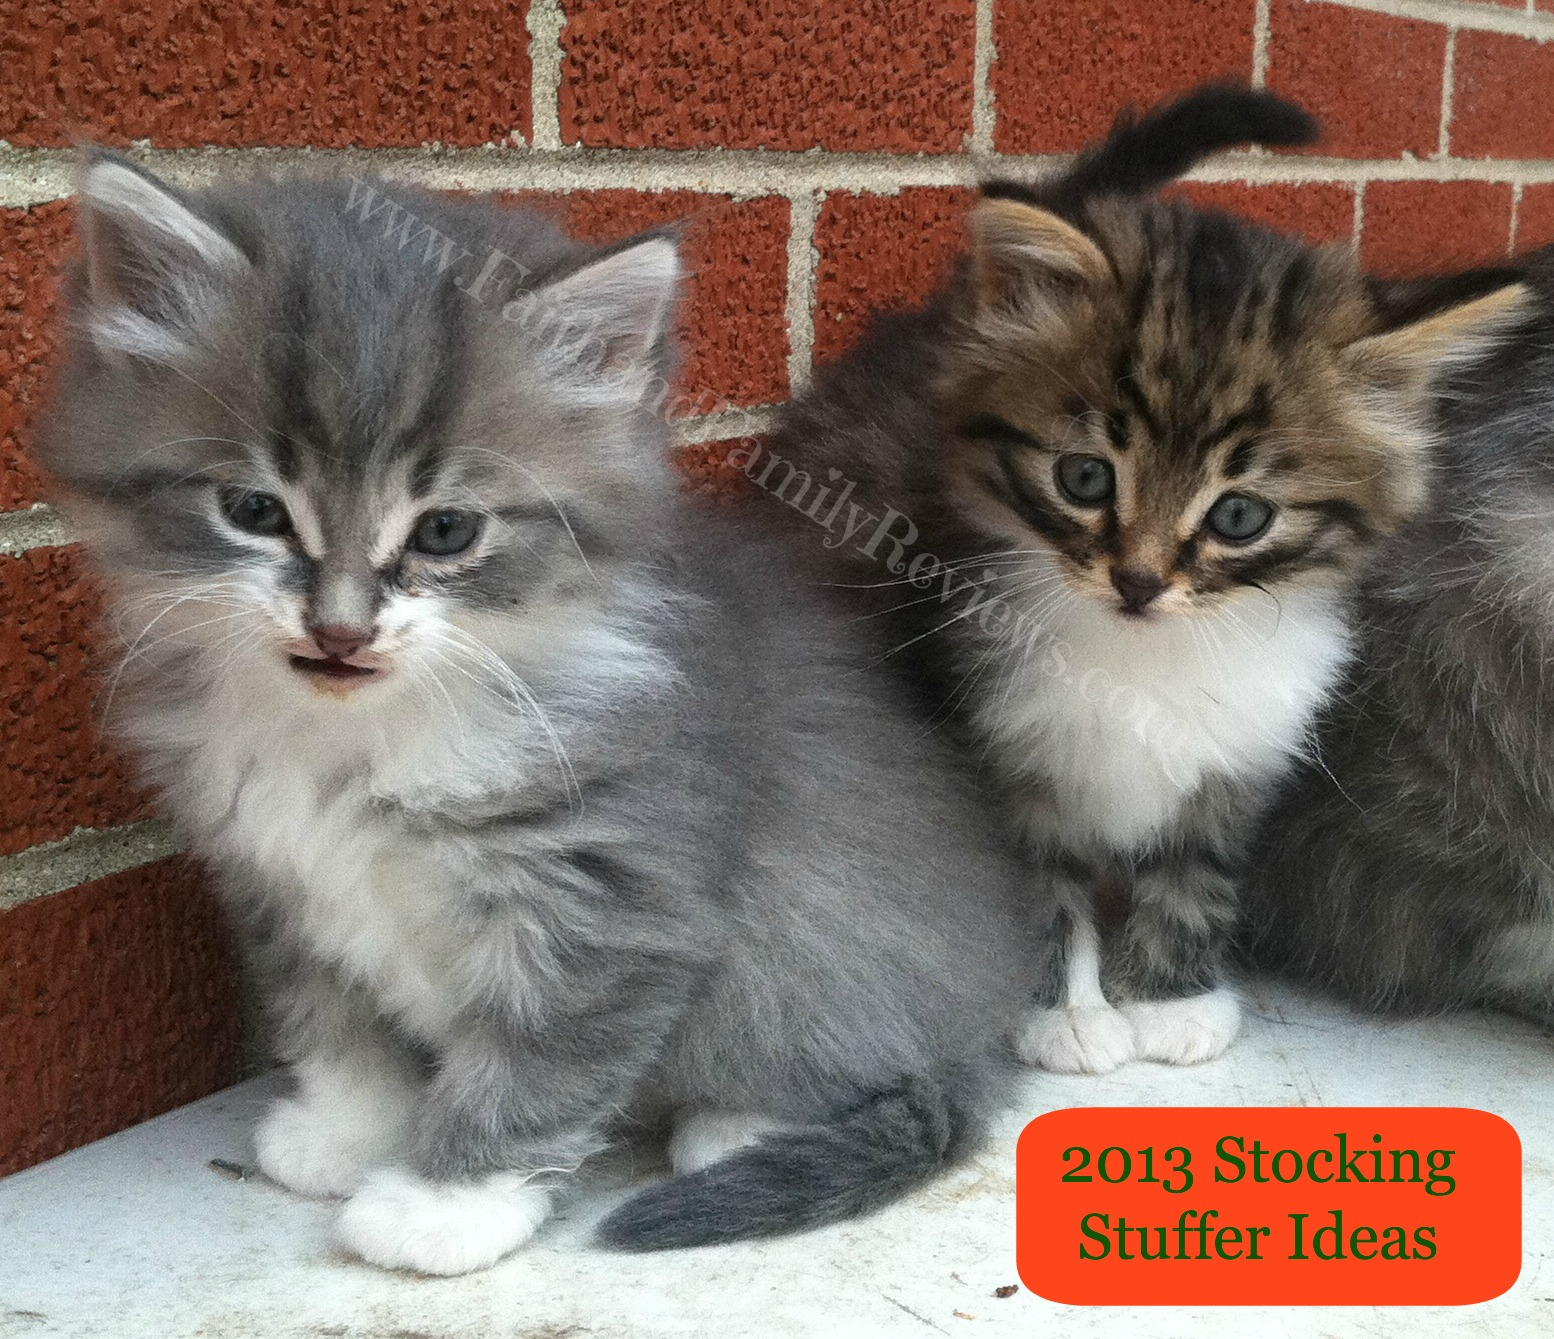 FFR Kitten Stocking Stuffer Ideas